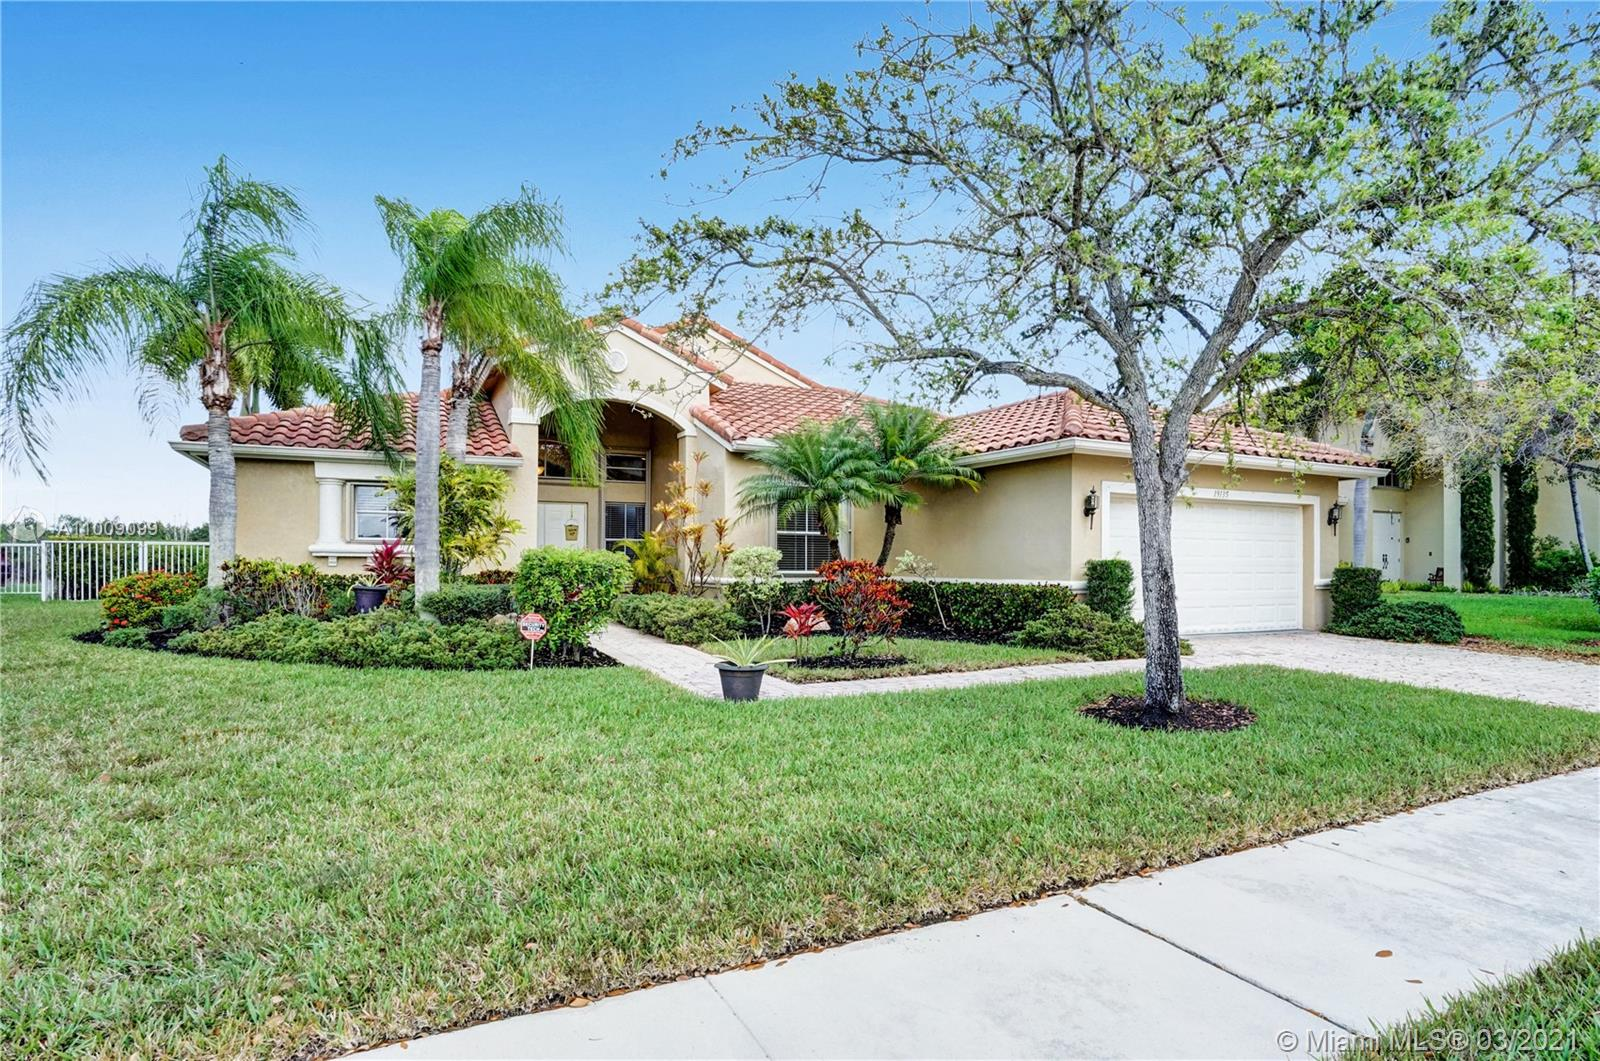 Come live in one of the most sought-after gated communities in Pembroke Pines, Encantada. This beautifully remodeled home features 4bed/2 bath, upgraded kitchen, including granite countertops and Stainless Steel appliances. The large master bedroom features two walk-in closets, renovated bathroom, including quartz countertops, dual sinks and frameless showers doors. Guest bedrooms/bath upgraded with new flooring and quartz countertops. The property has New accordion shutters and a tankless water heater. Come relax in the covered patio and serene views of the lake. No neighbors in the back for extra privacy. This home sits on an oversized lot, plenty of space for a pool. Located near the best A rated schools. Don't miss the opportunity to live in this beautiful family oriented community.